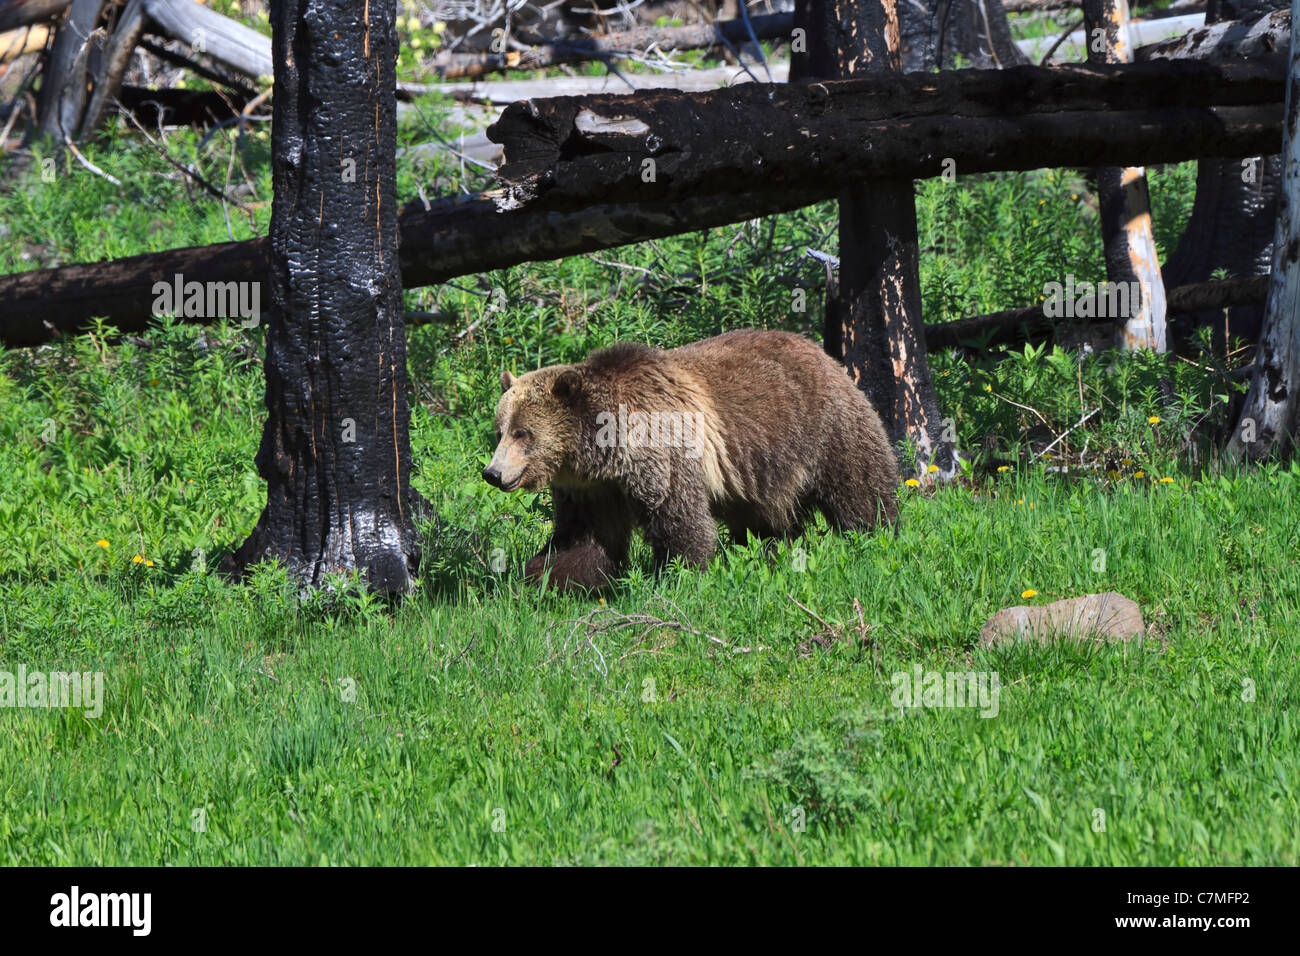 Grizzly Bear, Ursus arctos horribilis. A grizzly bear in an area of forest fire regeneration in Yellowstone NP in - Stock Image